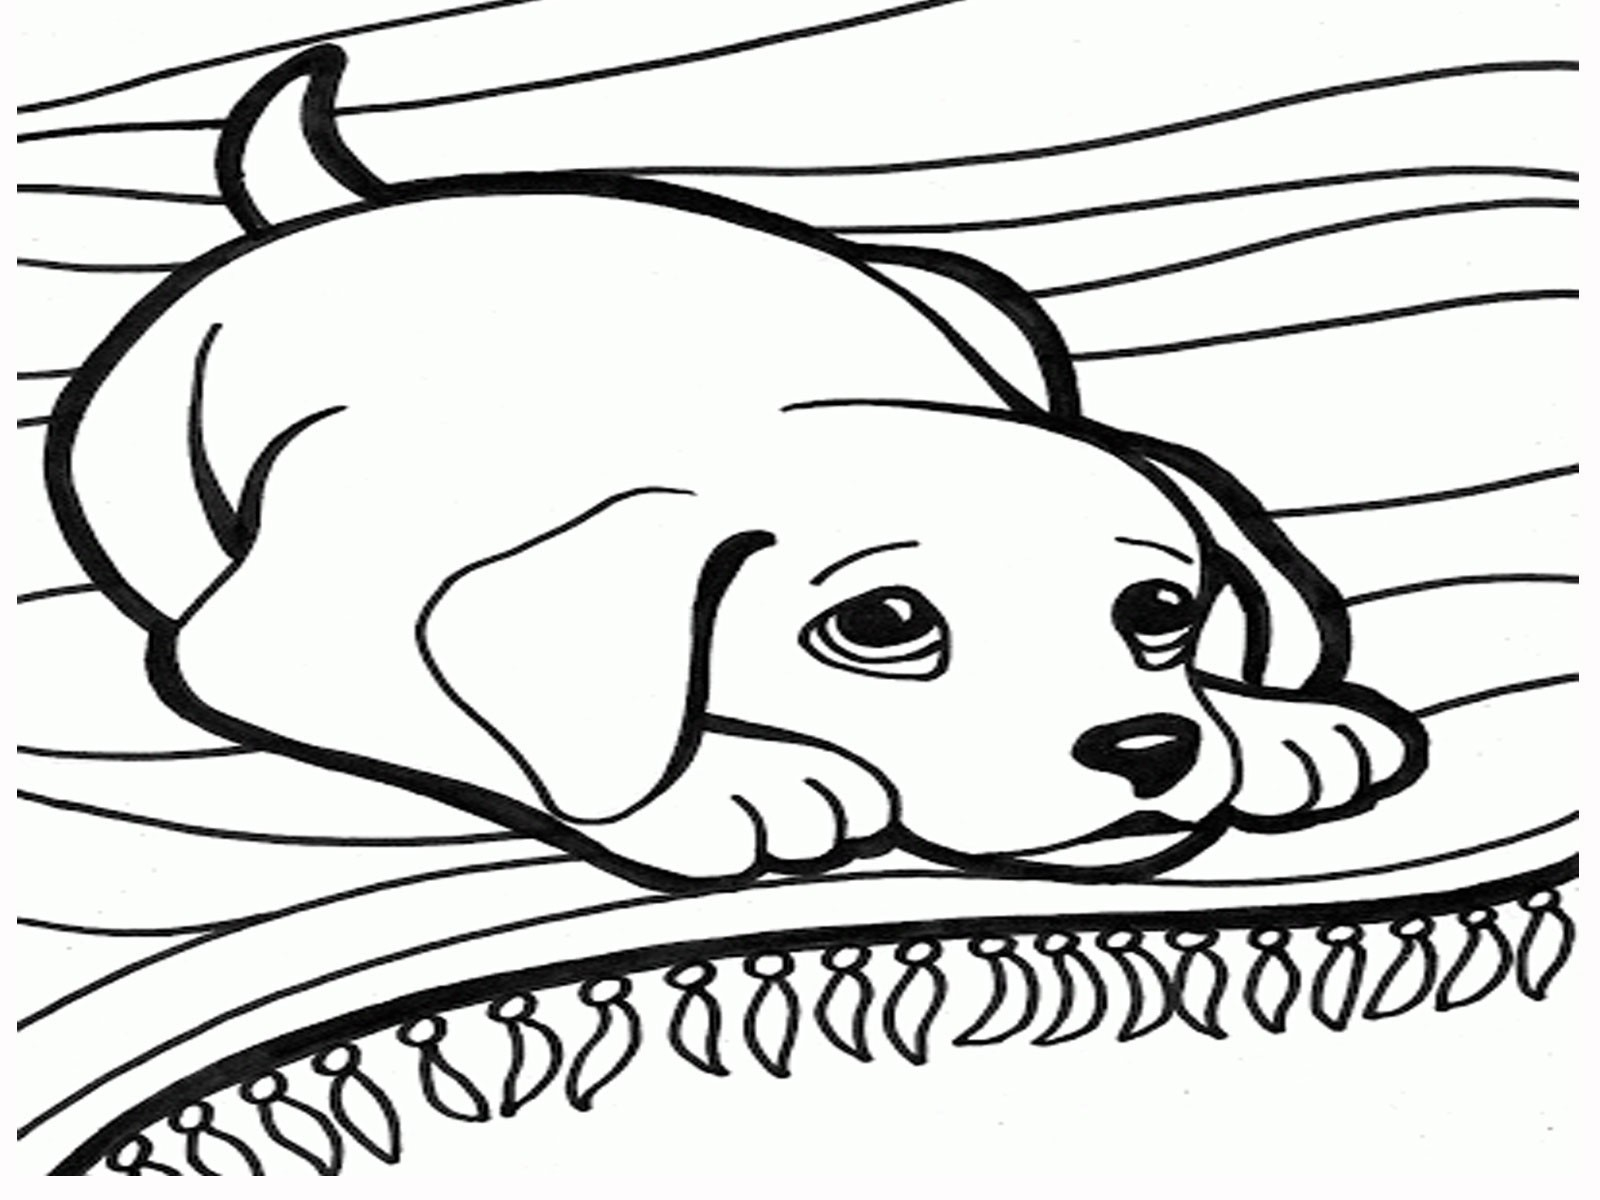 Dog And Cat Coloring Pages New Coloring Pages Dogs And Cats Dog Cat Refrence Of 8 Futurama Birijus Com